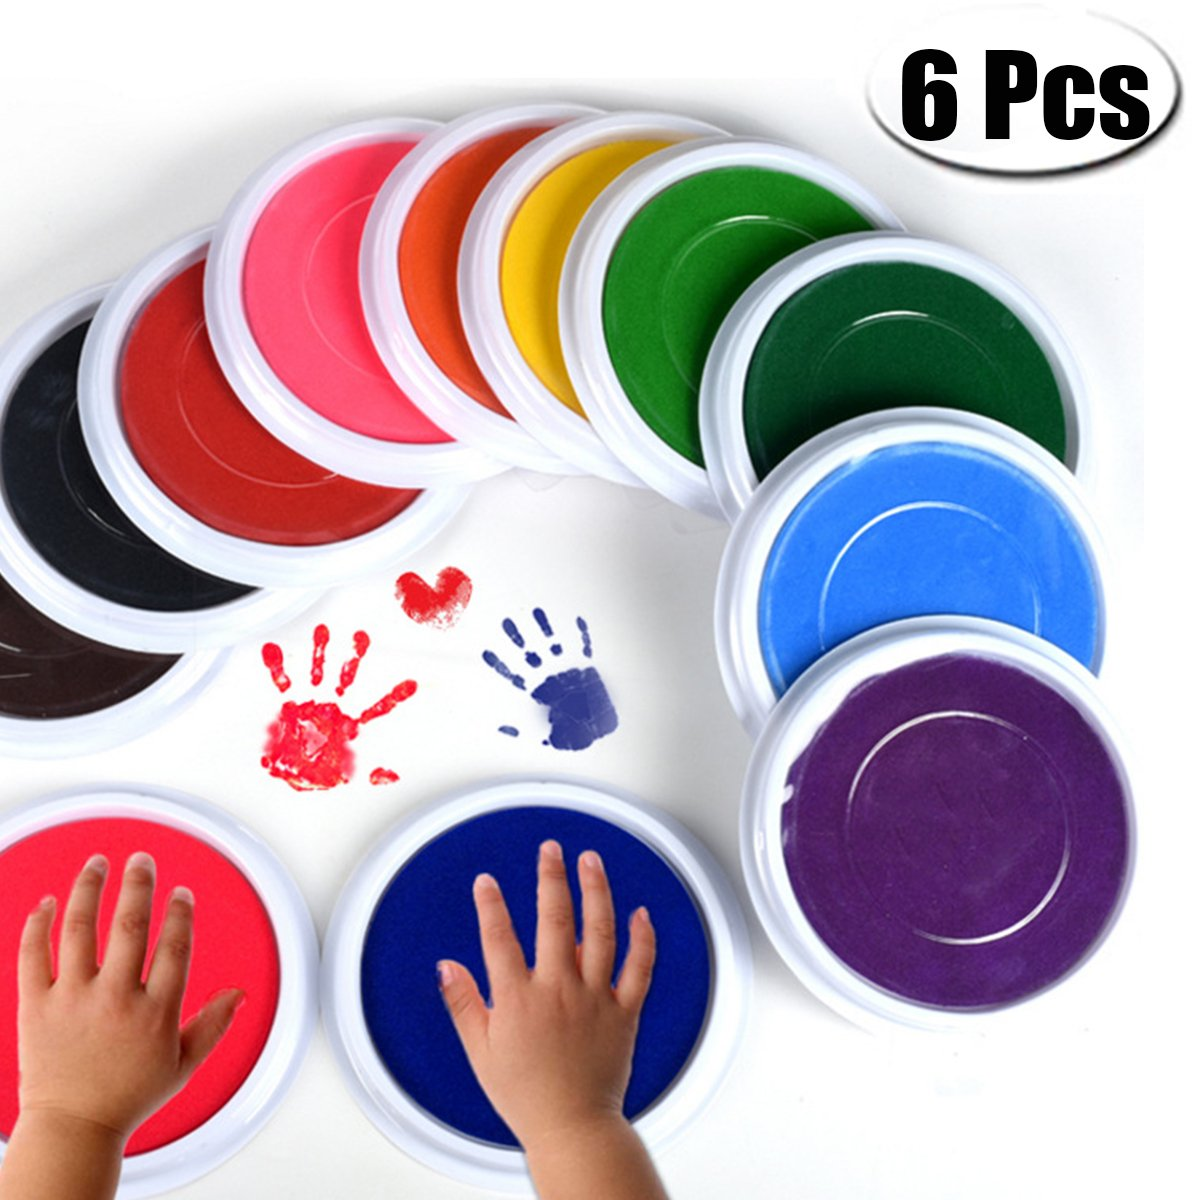 PartyYeah 6-Pcs Multicolors Baby Ink Pad for Baby Footprints Handprints Fingerprints Kit, Perfect Keep Baby Memory Baby Shower Gift by PartyYeah